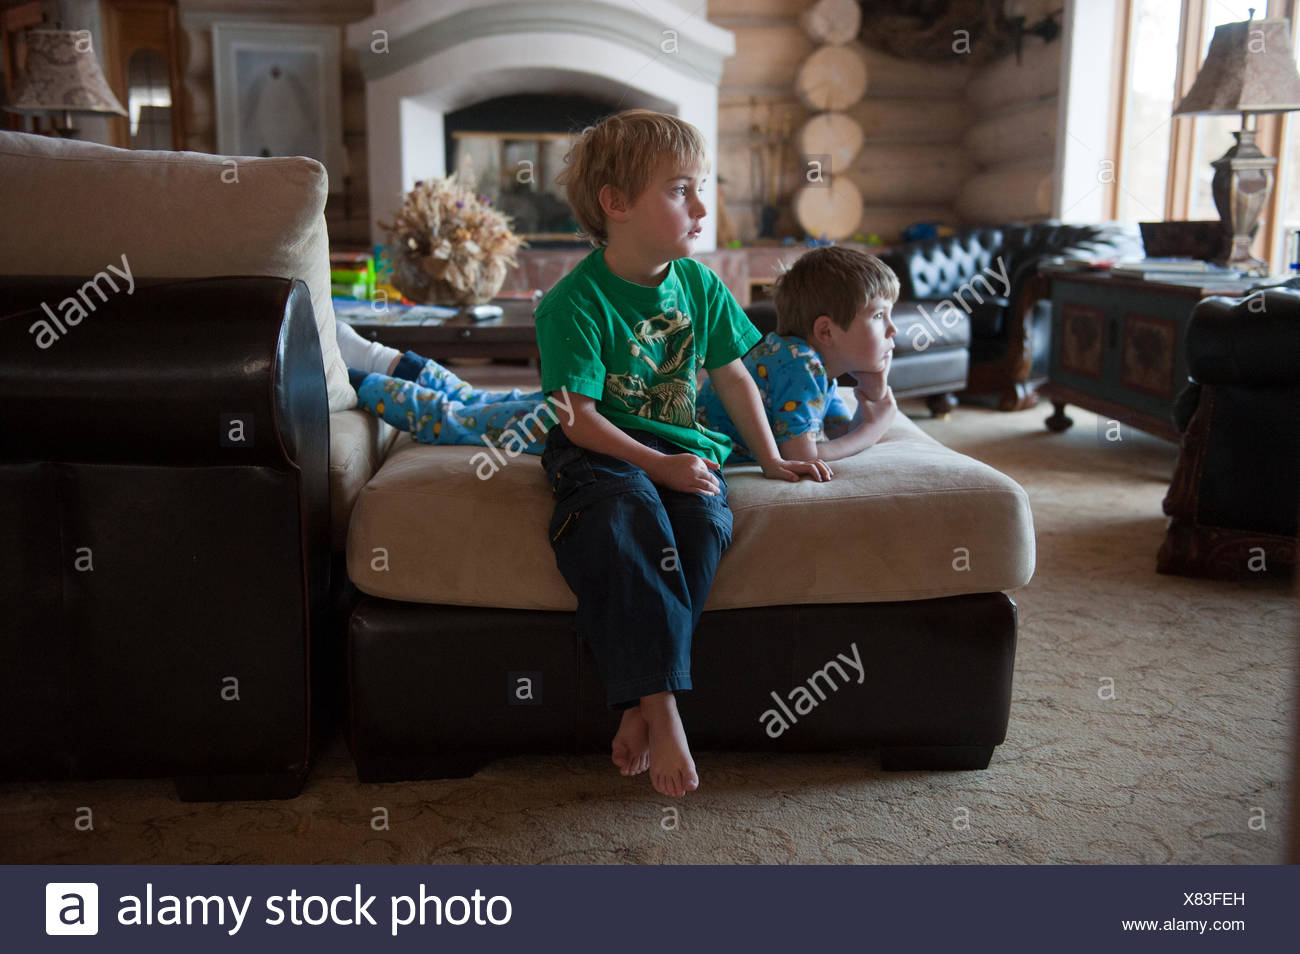 Two young boys are kept entertained by a television at their home in Denver, Colorado. - Stock Image